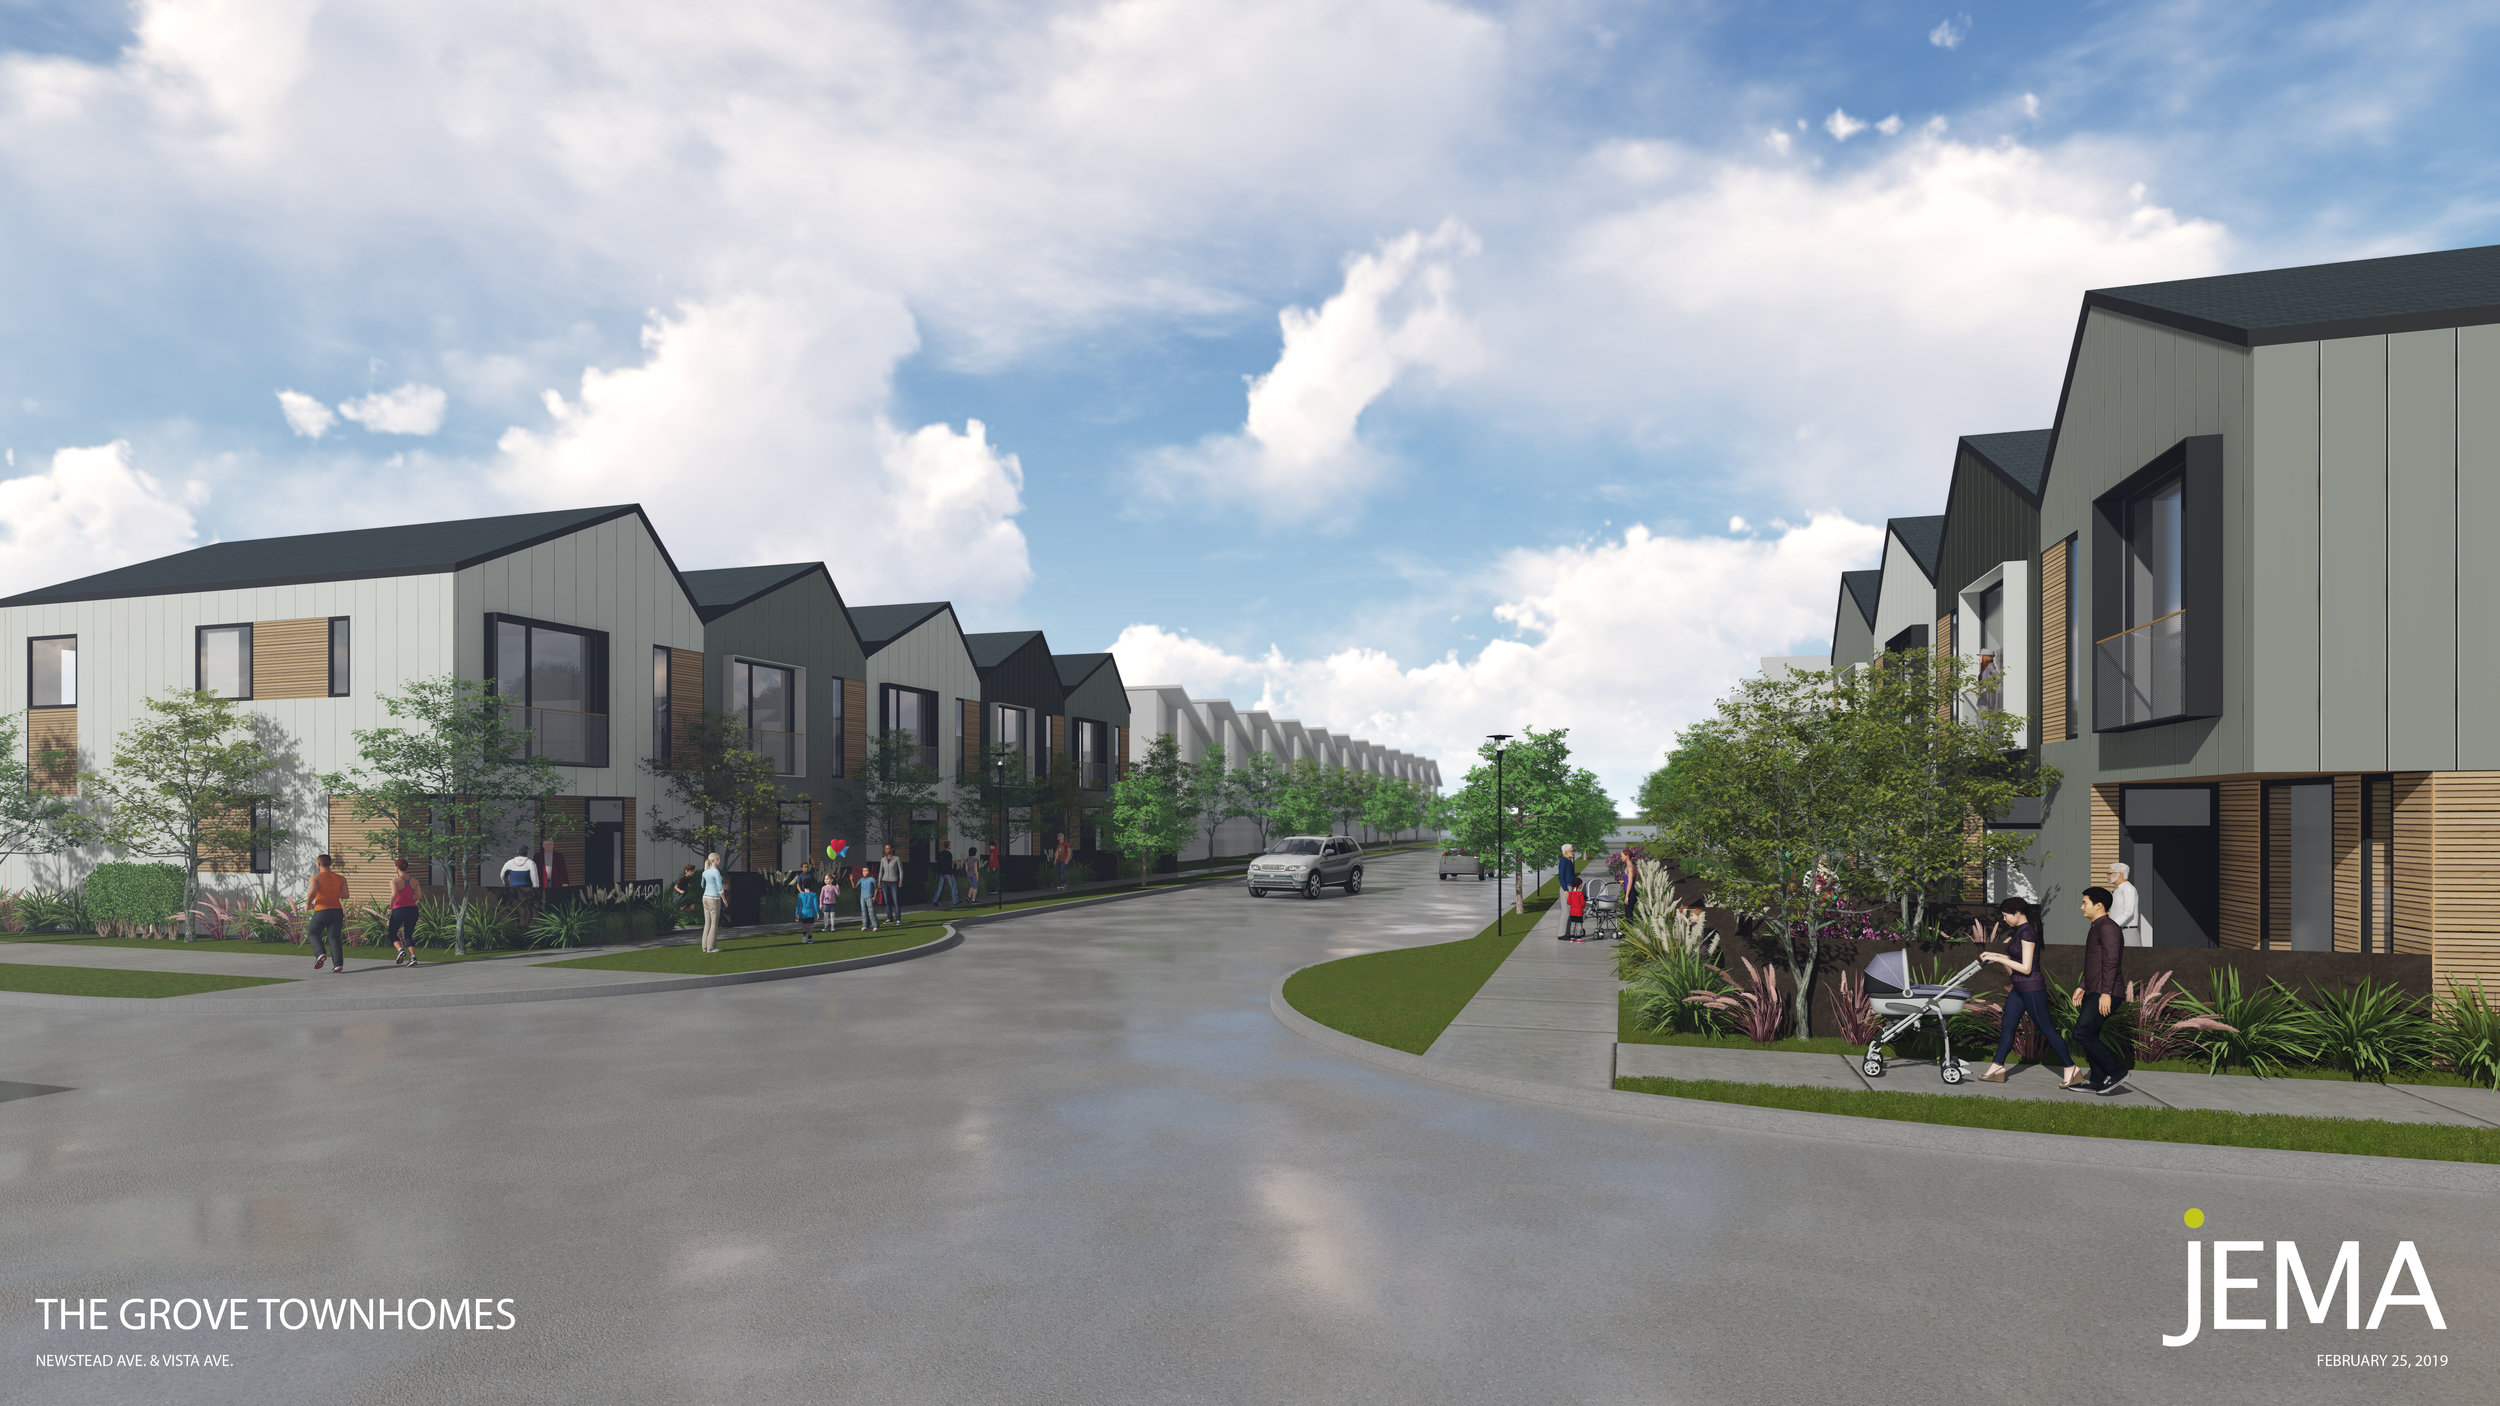 The Grove Townhomes: view looking West on Vista Avenue.